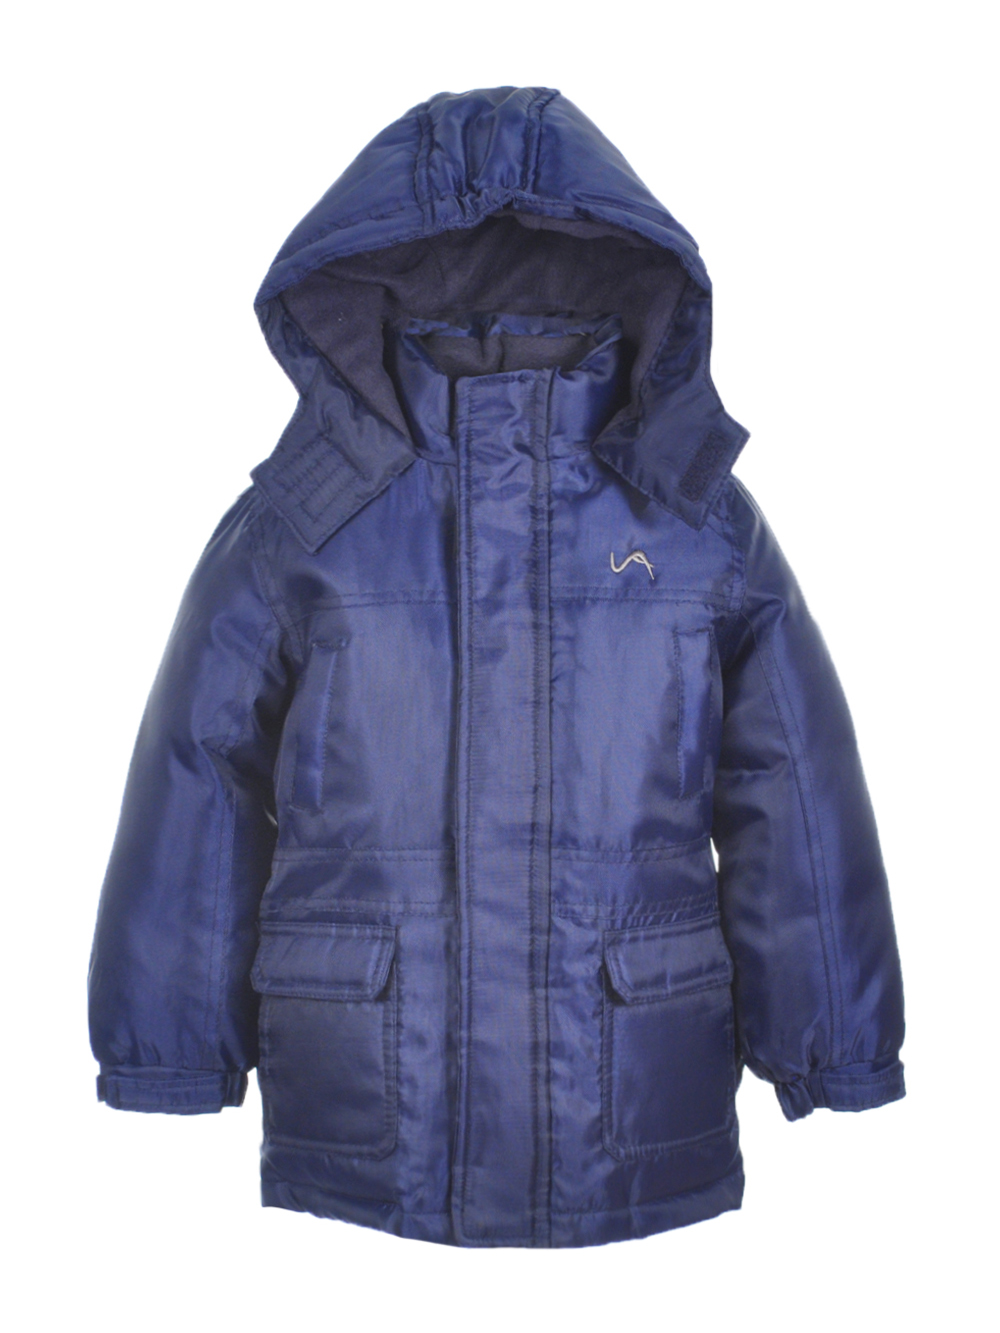 Image of Vertical 9 Little Boys Toddler Winter Stone Insulated Jacket Sizes 2T  4T  navy 4t